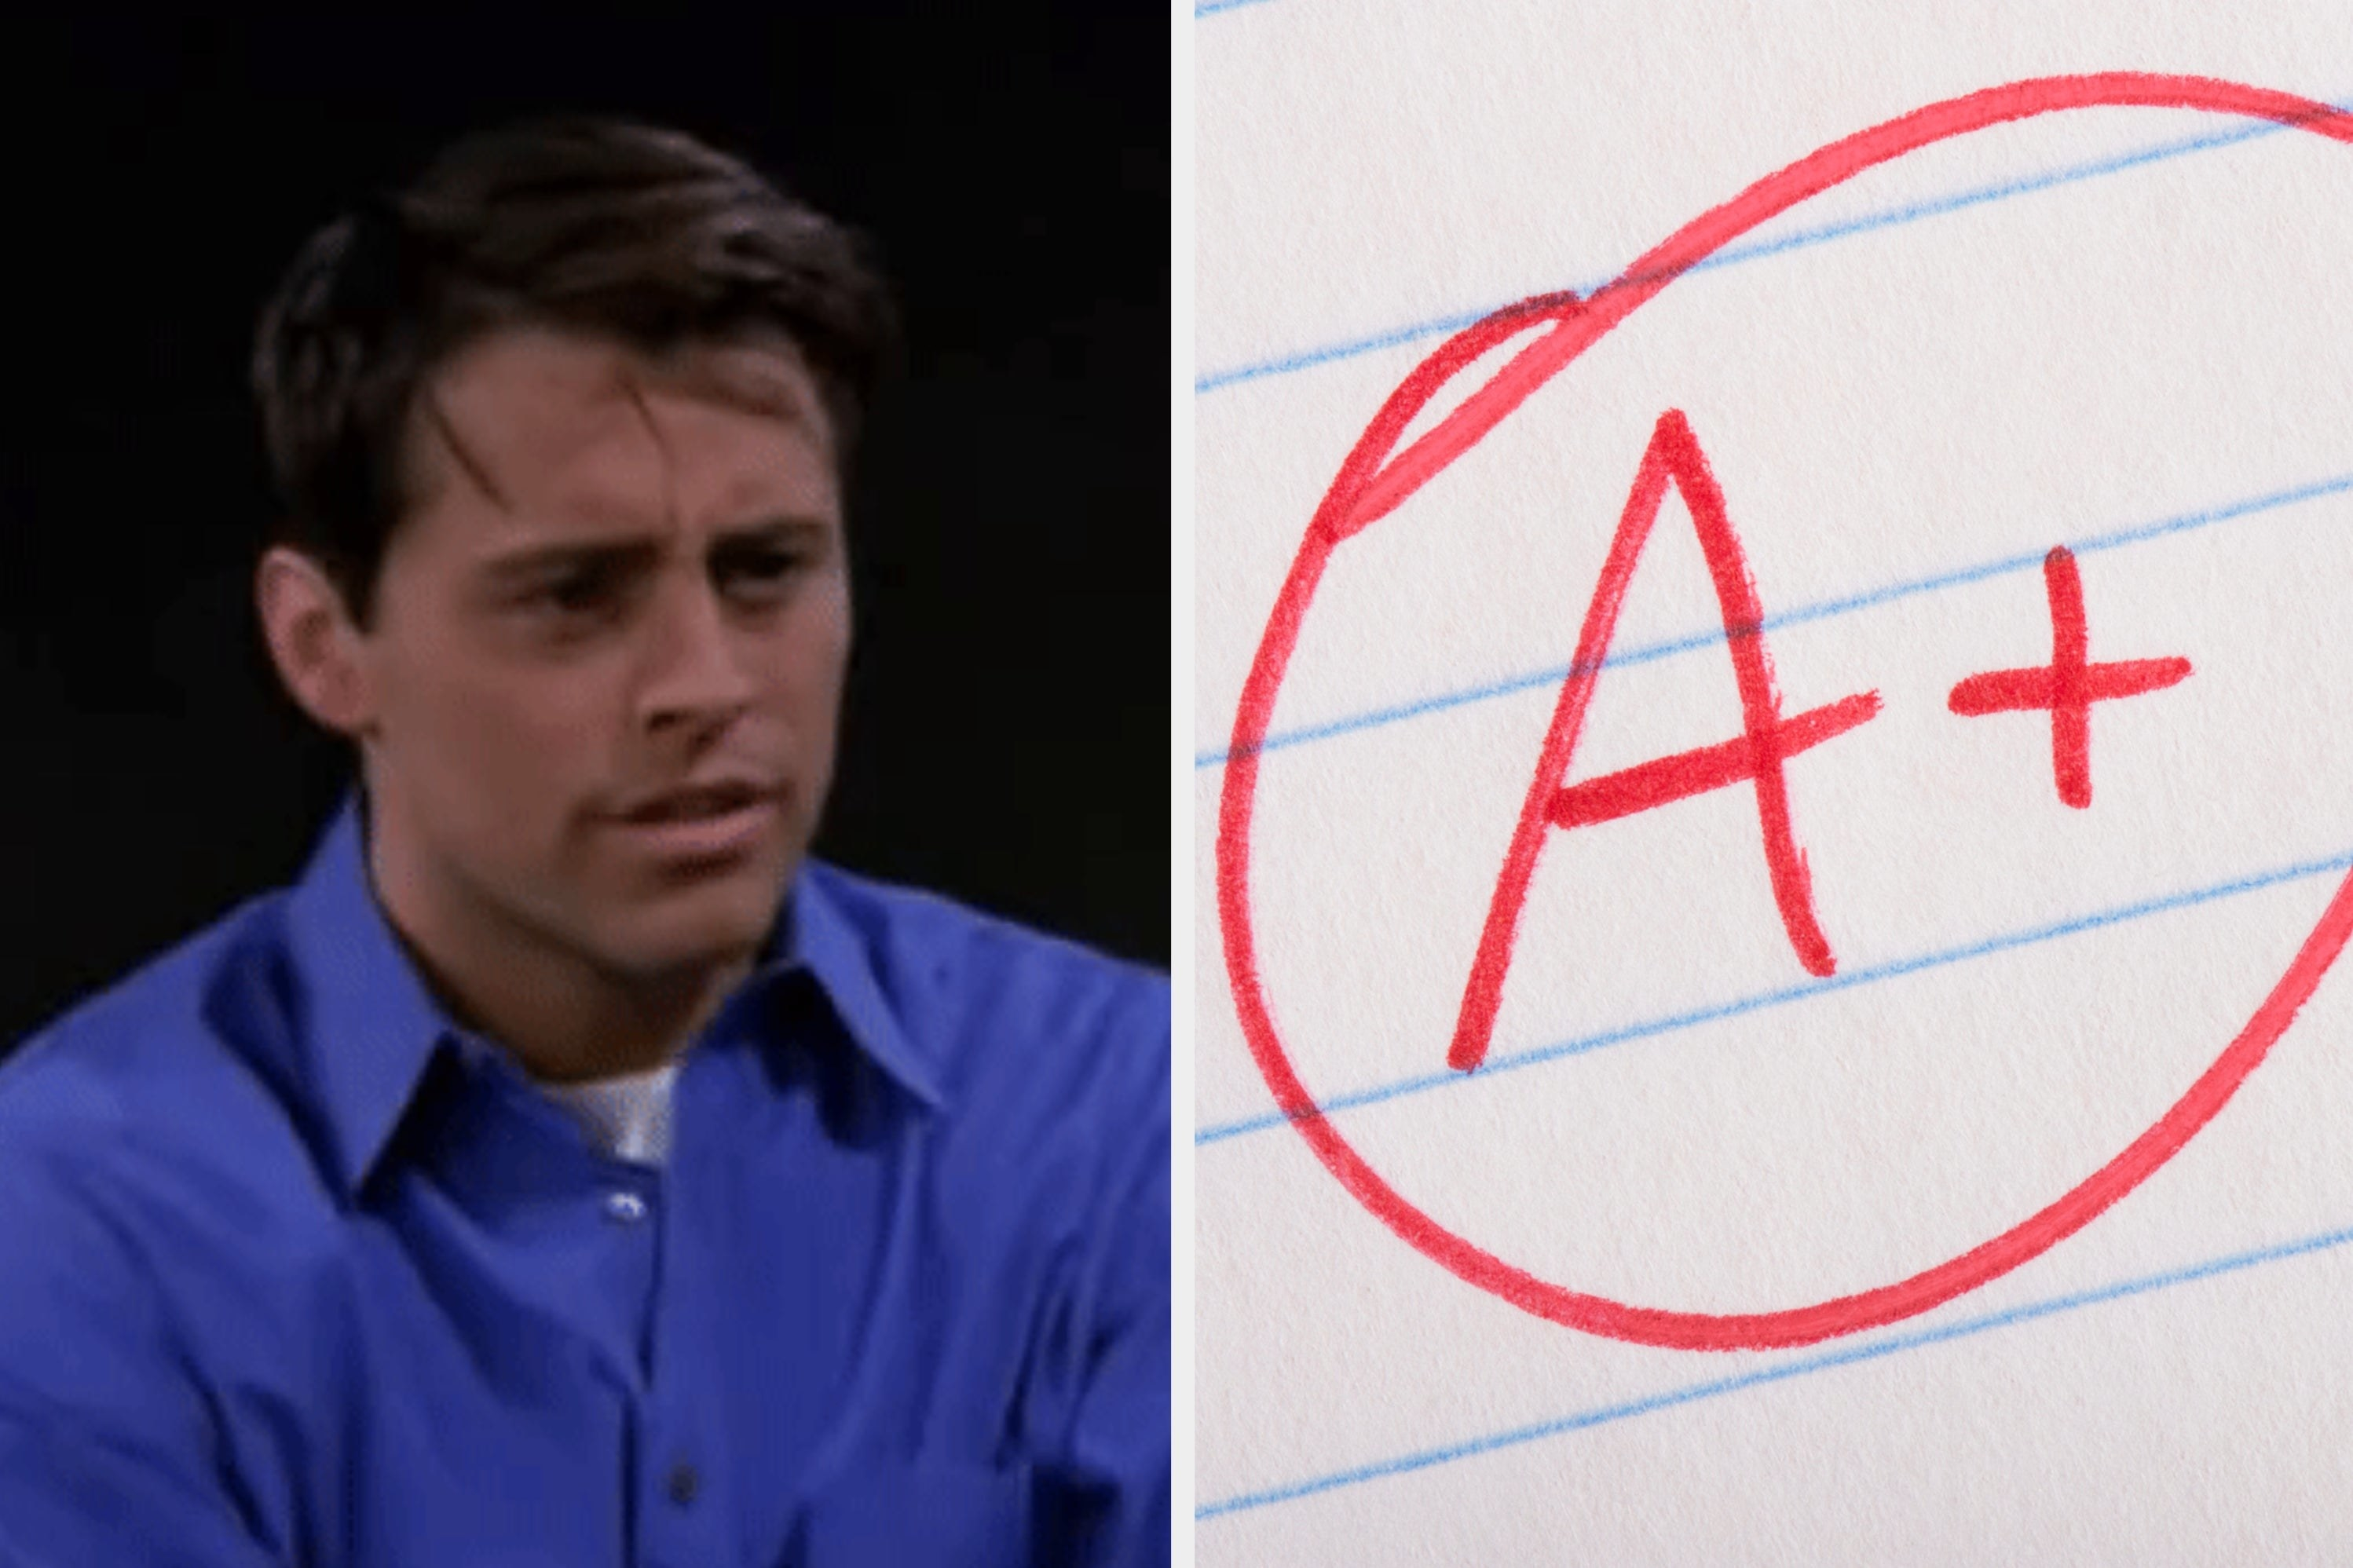 """Joey Tribbiani from """"Friends"""" and an A+"""